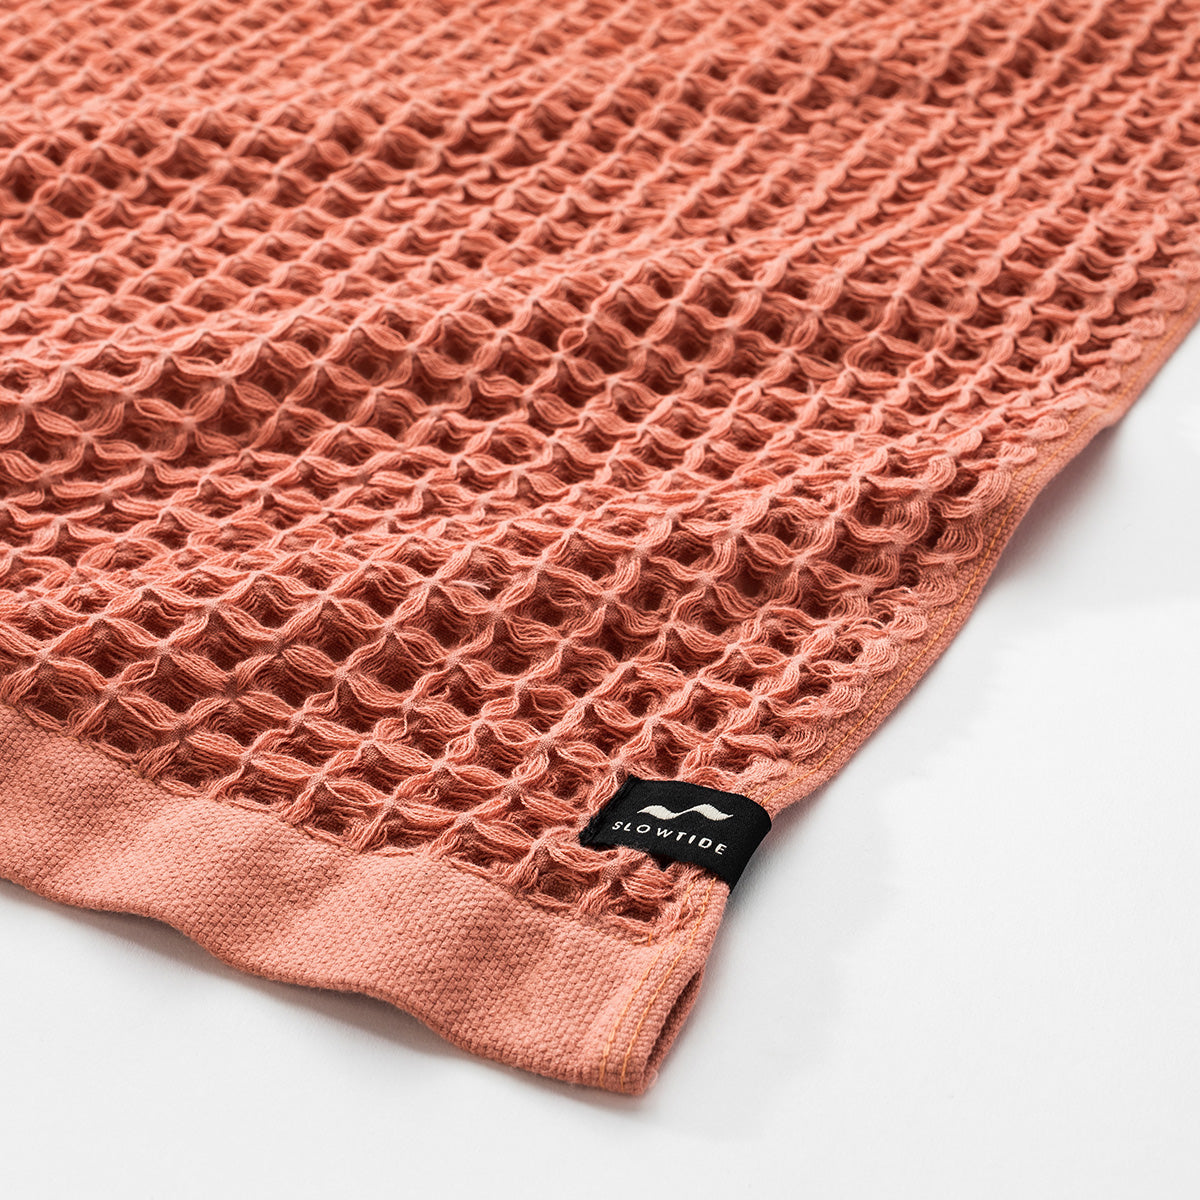 Guild Waffle Towel Four-Piece Bundle - Terracotta - Slowtide